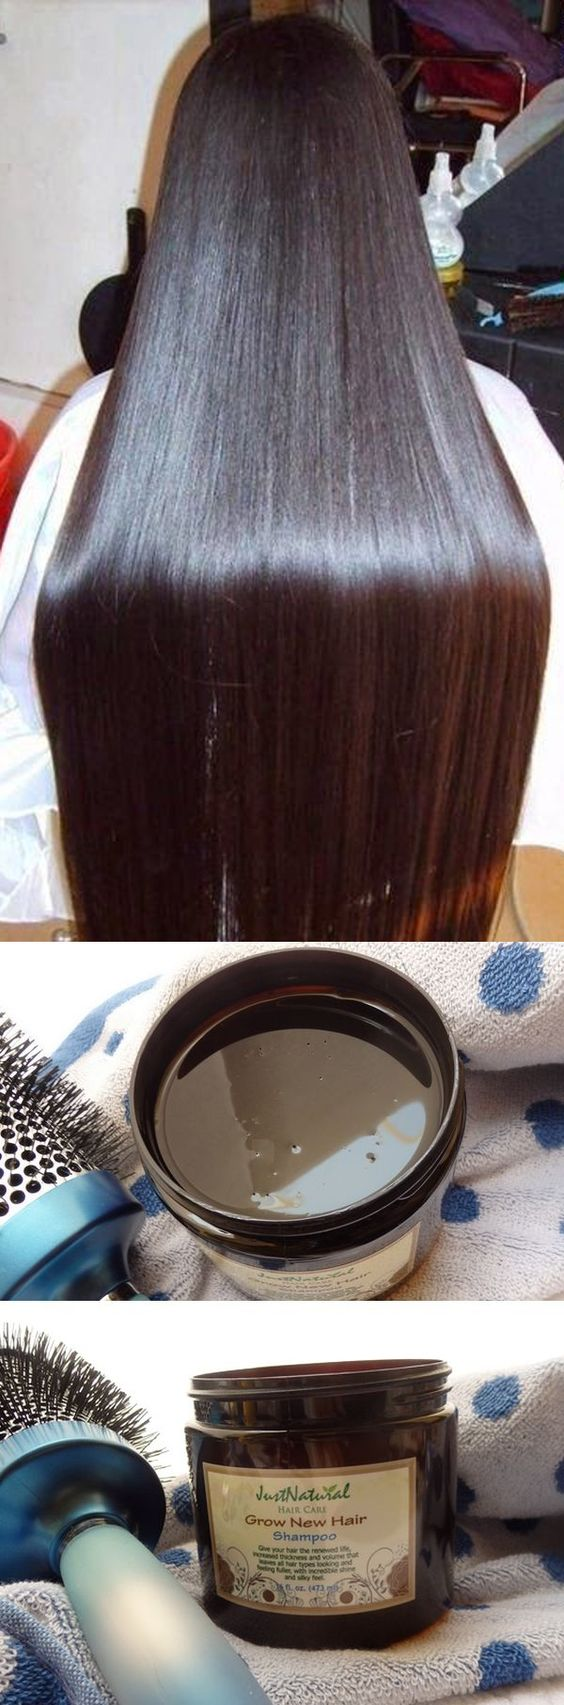 My friend recommended this solution for thinning hair, now my hair grows so much faster